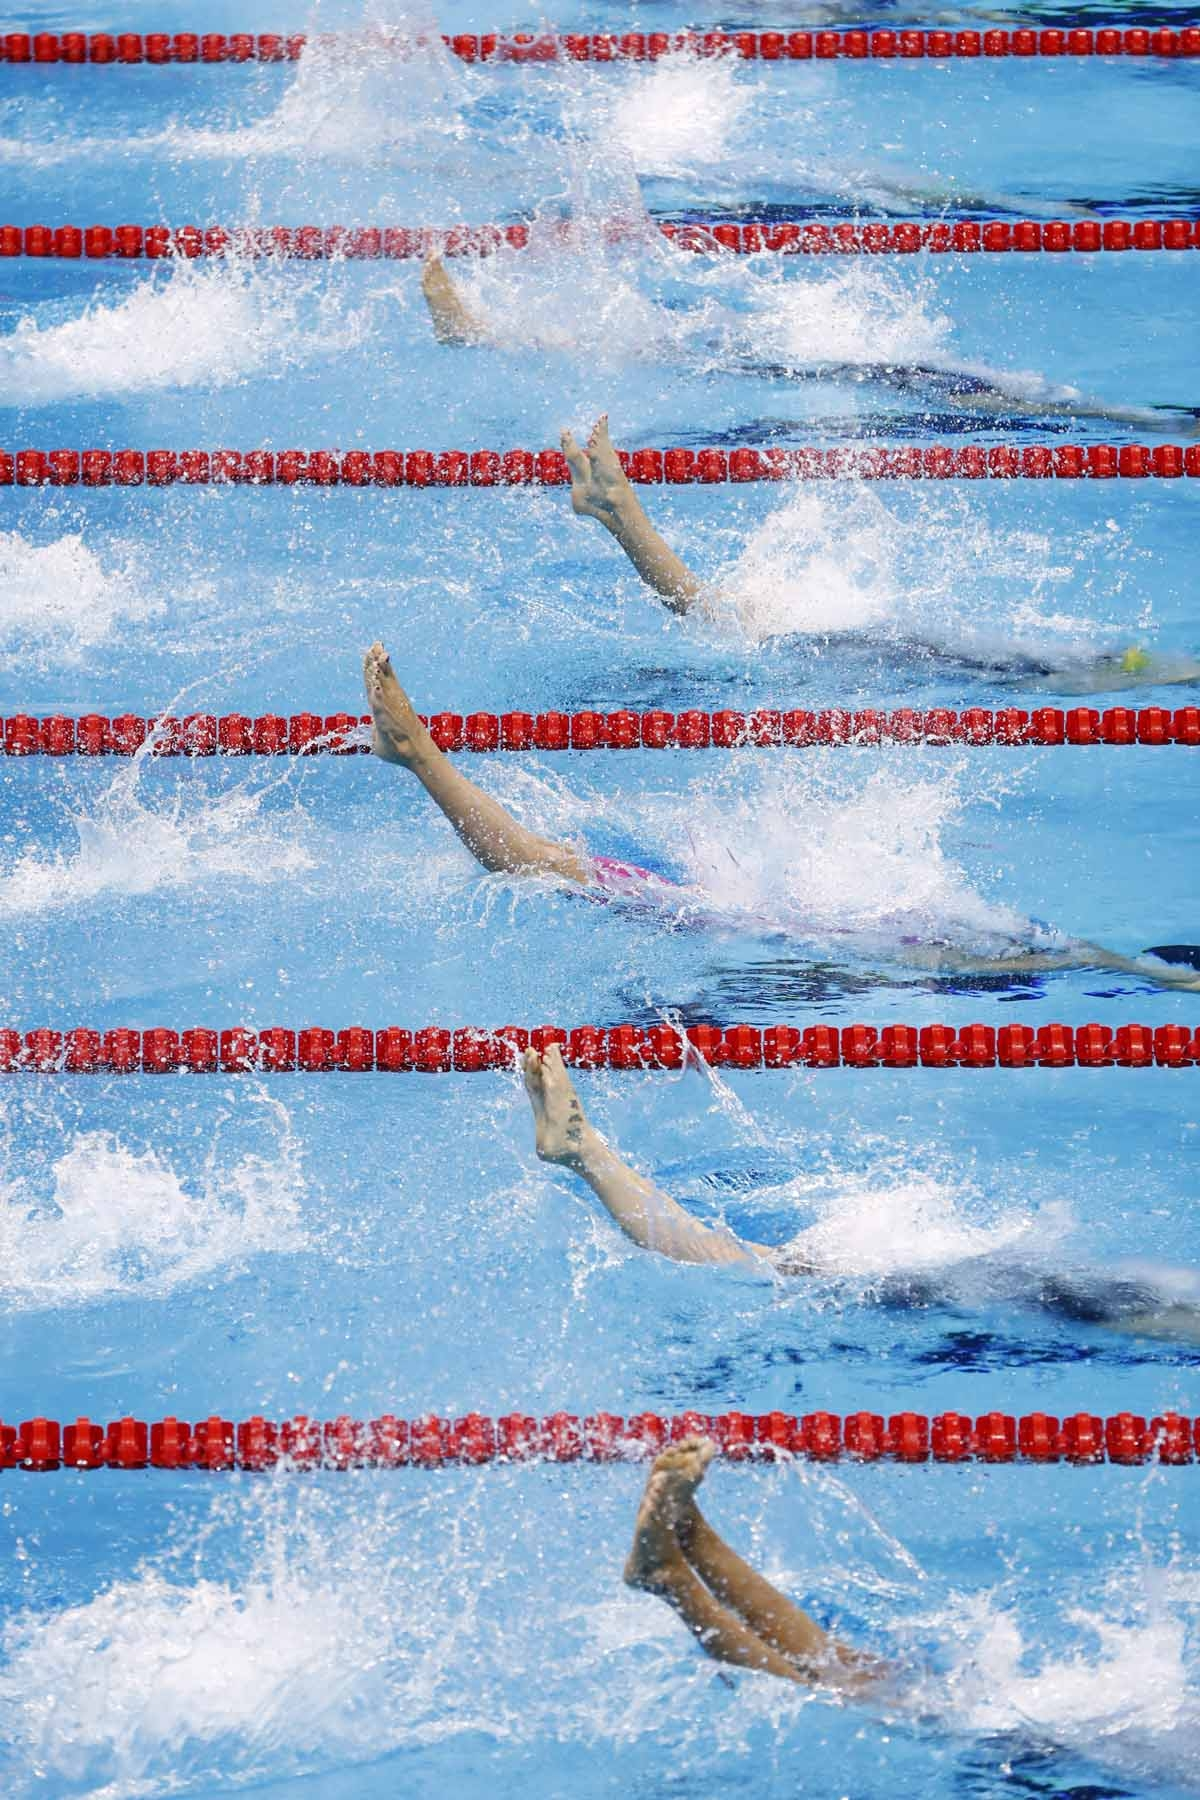 Swimmers compete in the Women's 100m Backstroke heats during the swimming event at the Rio 2016 Olympic Games at the Olympic Aquatics Stadium in Rio de Janeiro on August 7, 2016.